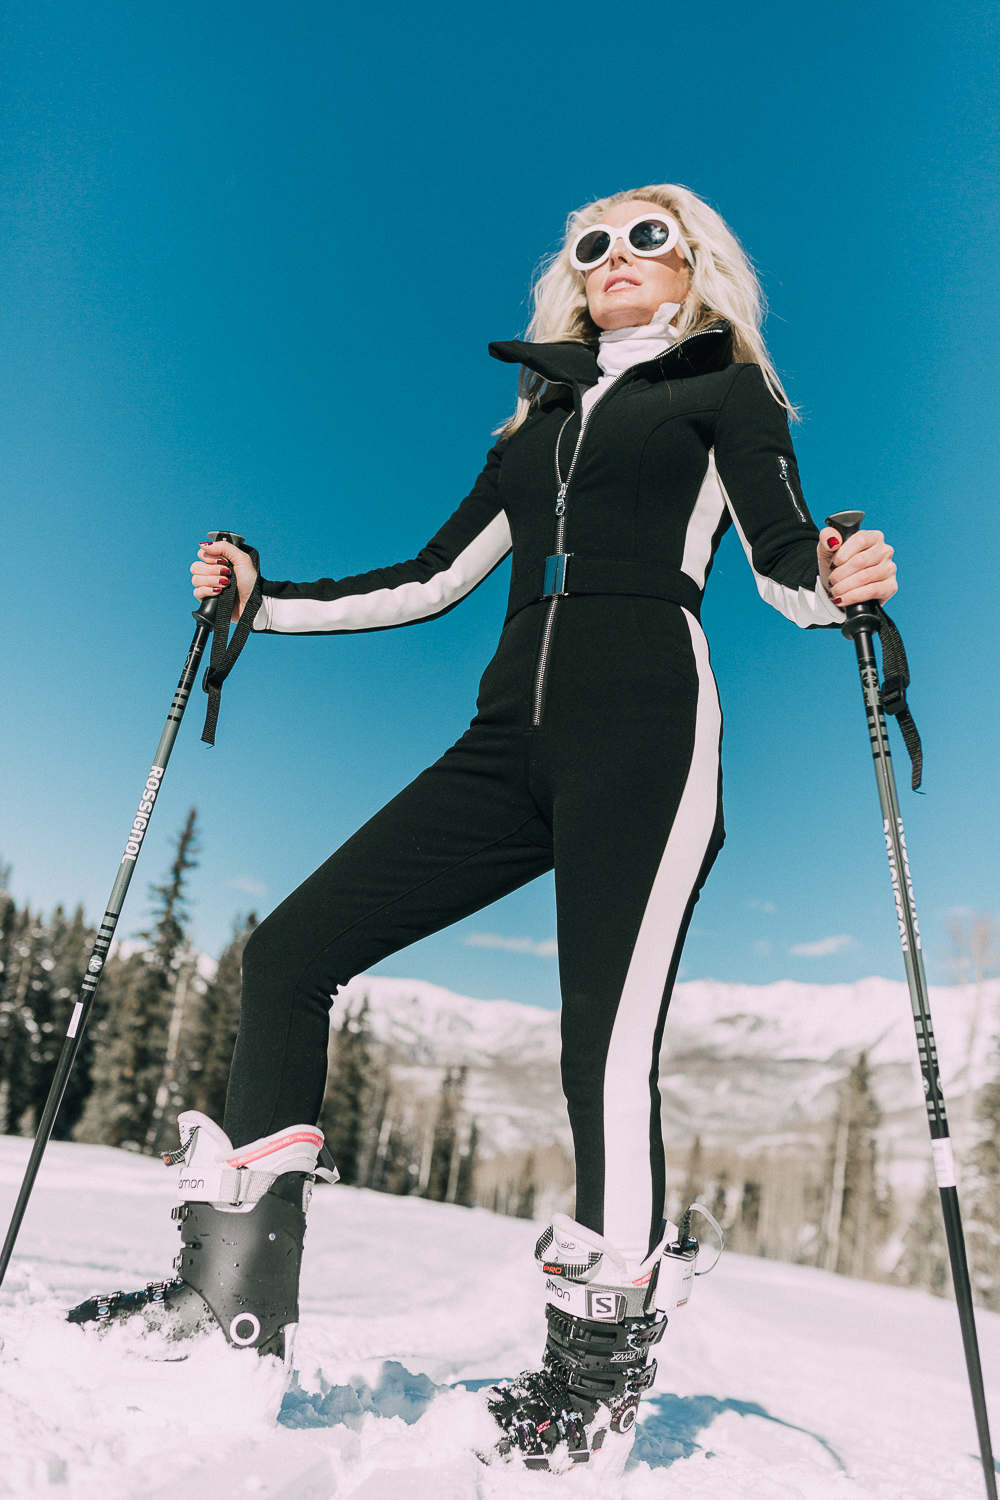 Ski Gear for women on eBay featuring a one-piece ski suit jumpsuit by Cordova on fashion blogger with blonde hair in snowy mountains, fashion blogger over 40 Erin Busbee of Busbeestyle.com